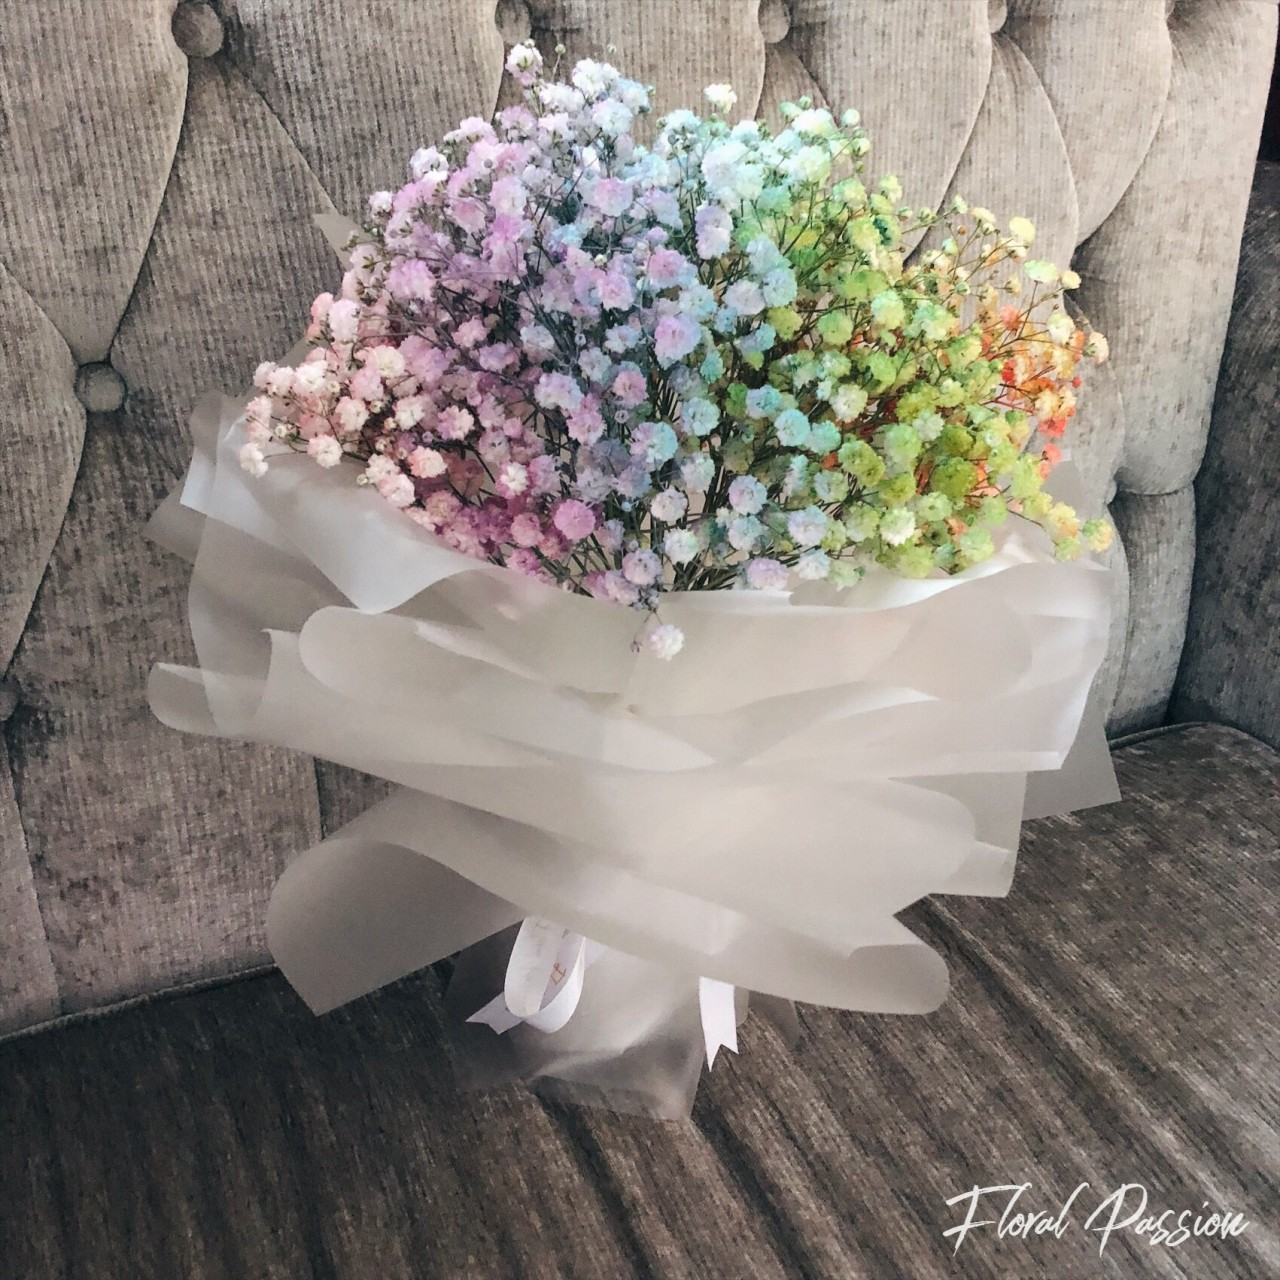 Floral Passion - Rainbow Baby's Breath